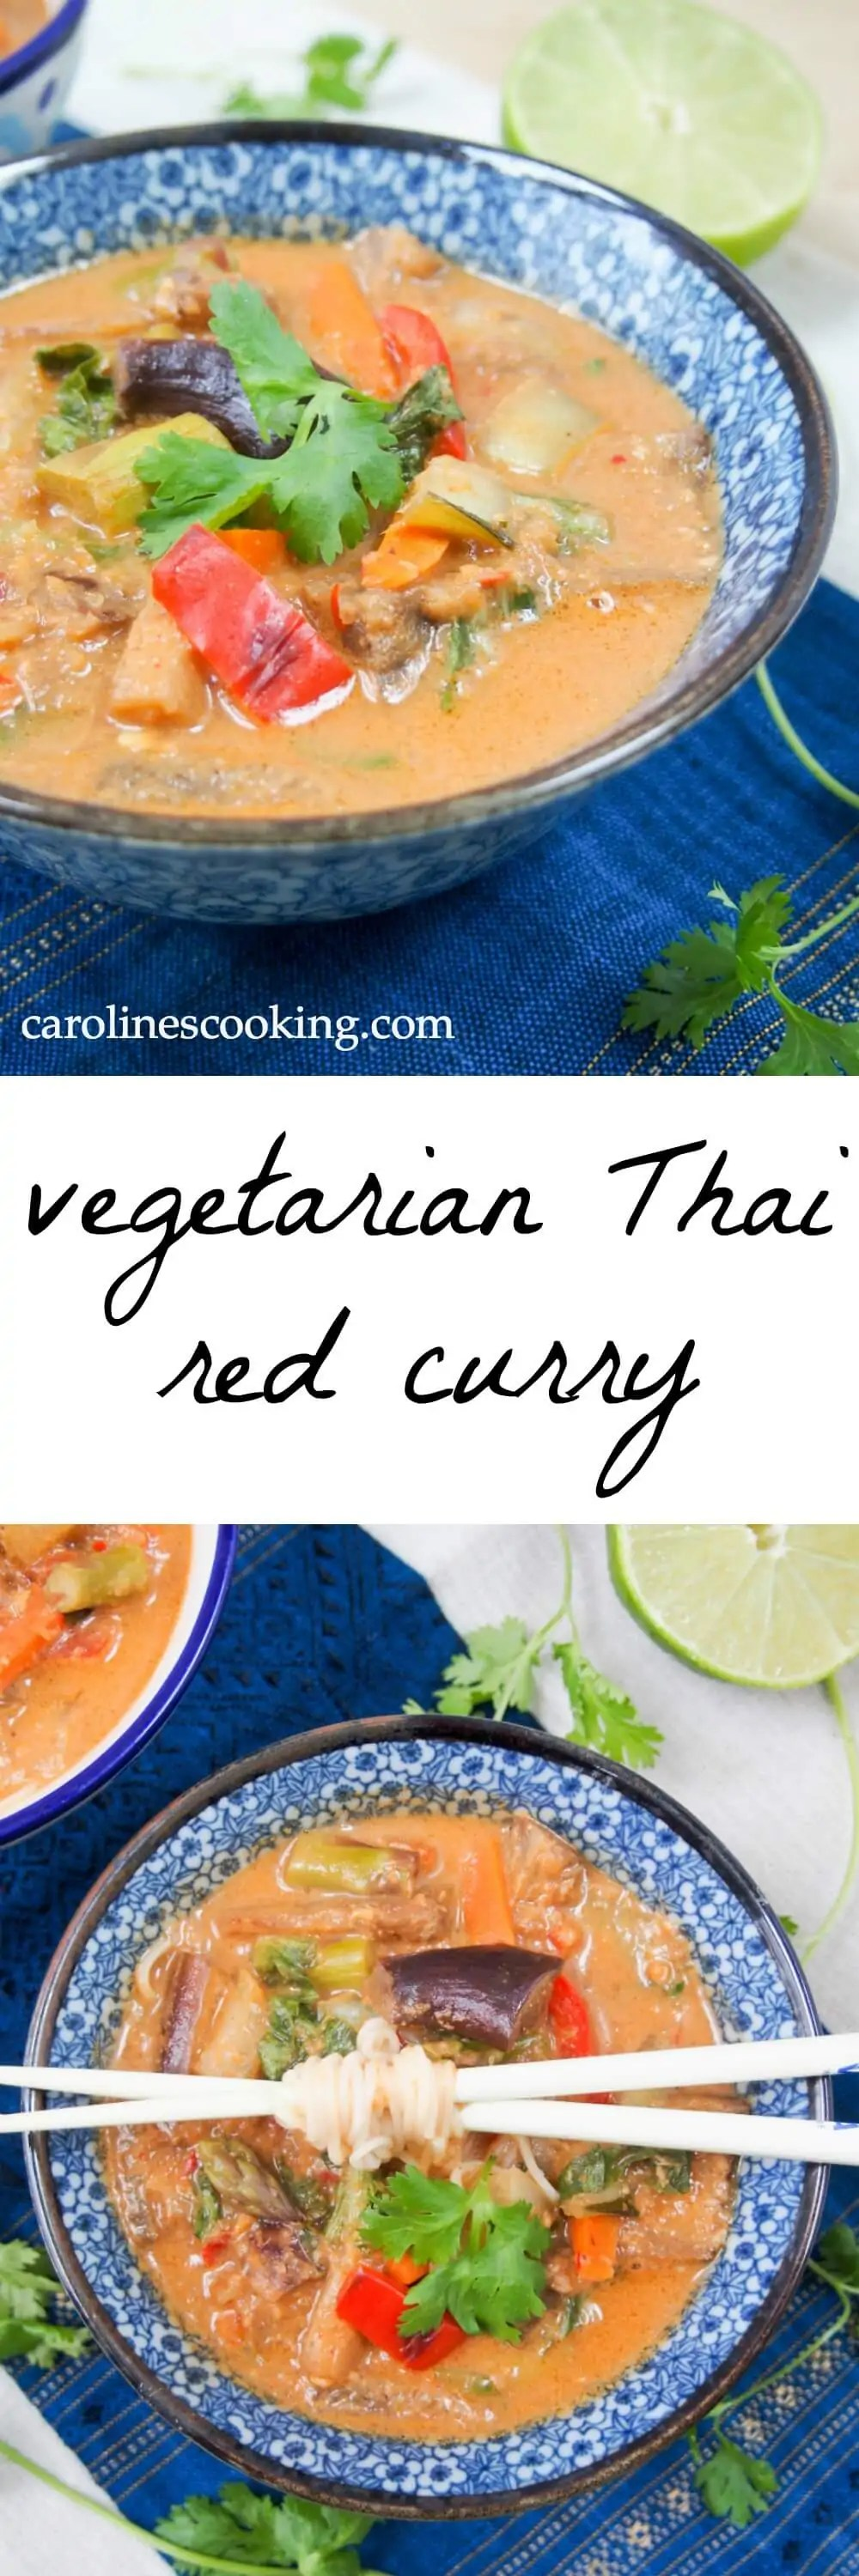 Vegetarian Thai red curry - an easy vegan curry from scratch that's full of veggies, creamy coconut and spicy flavor.